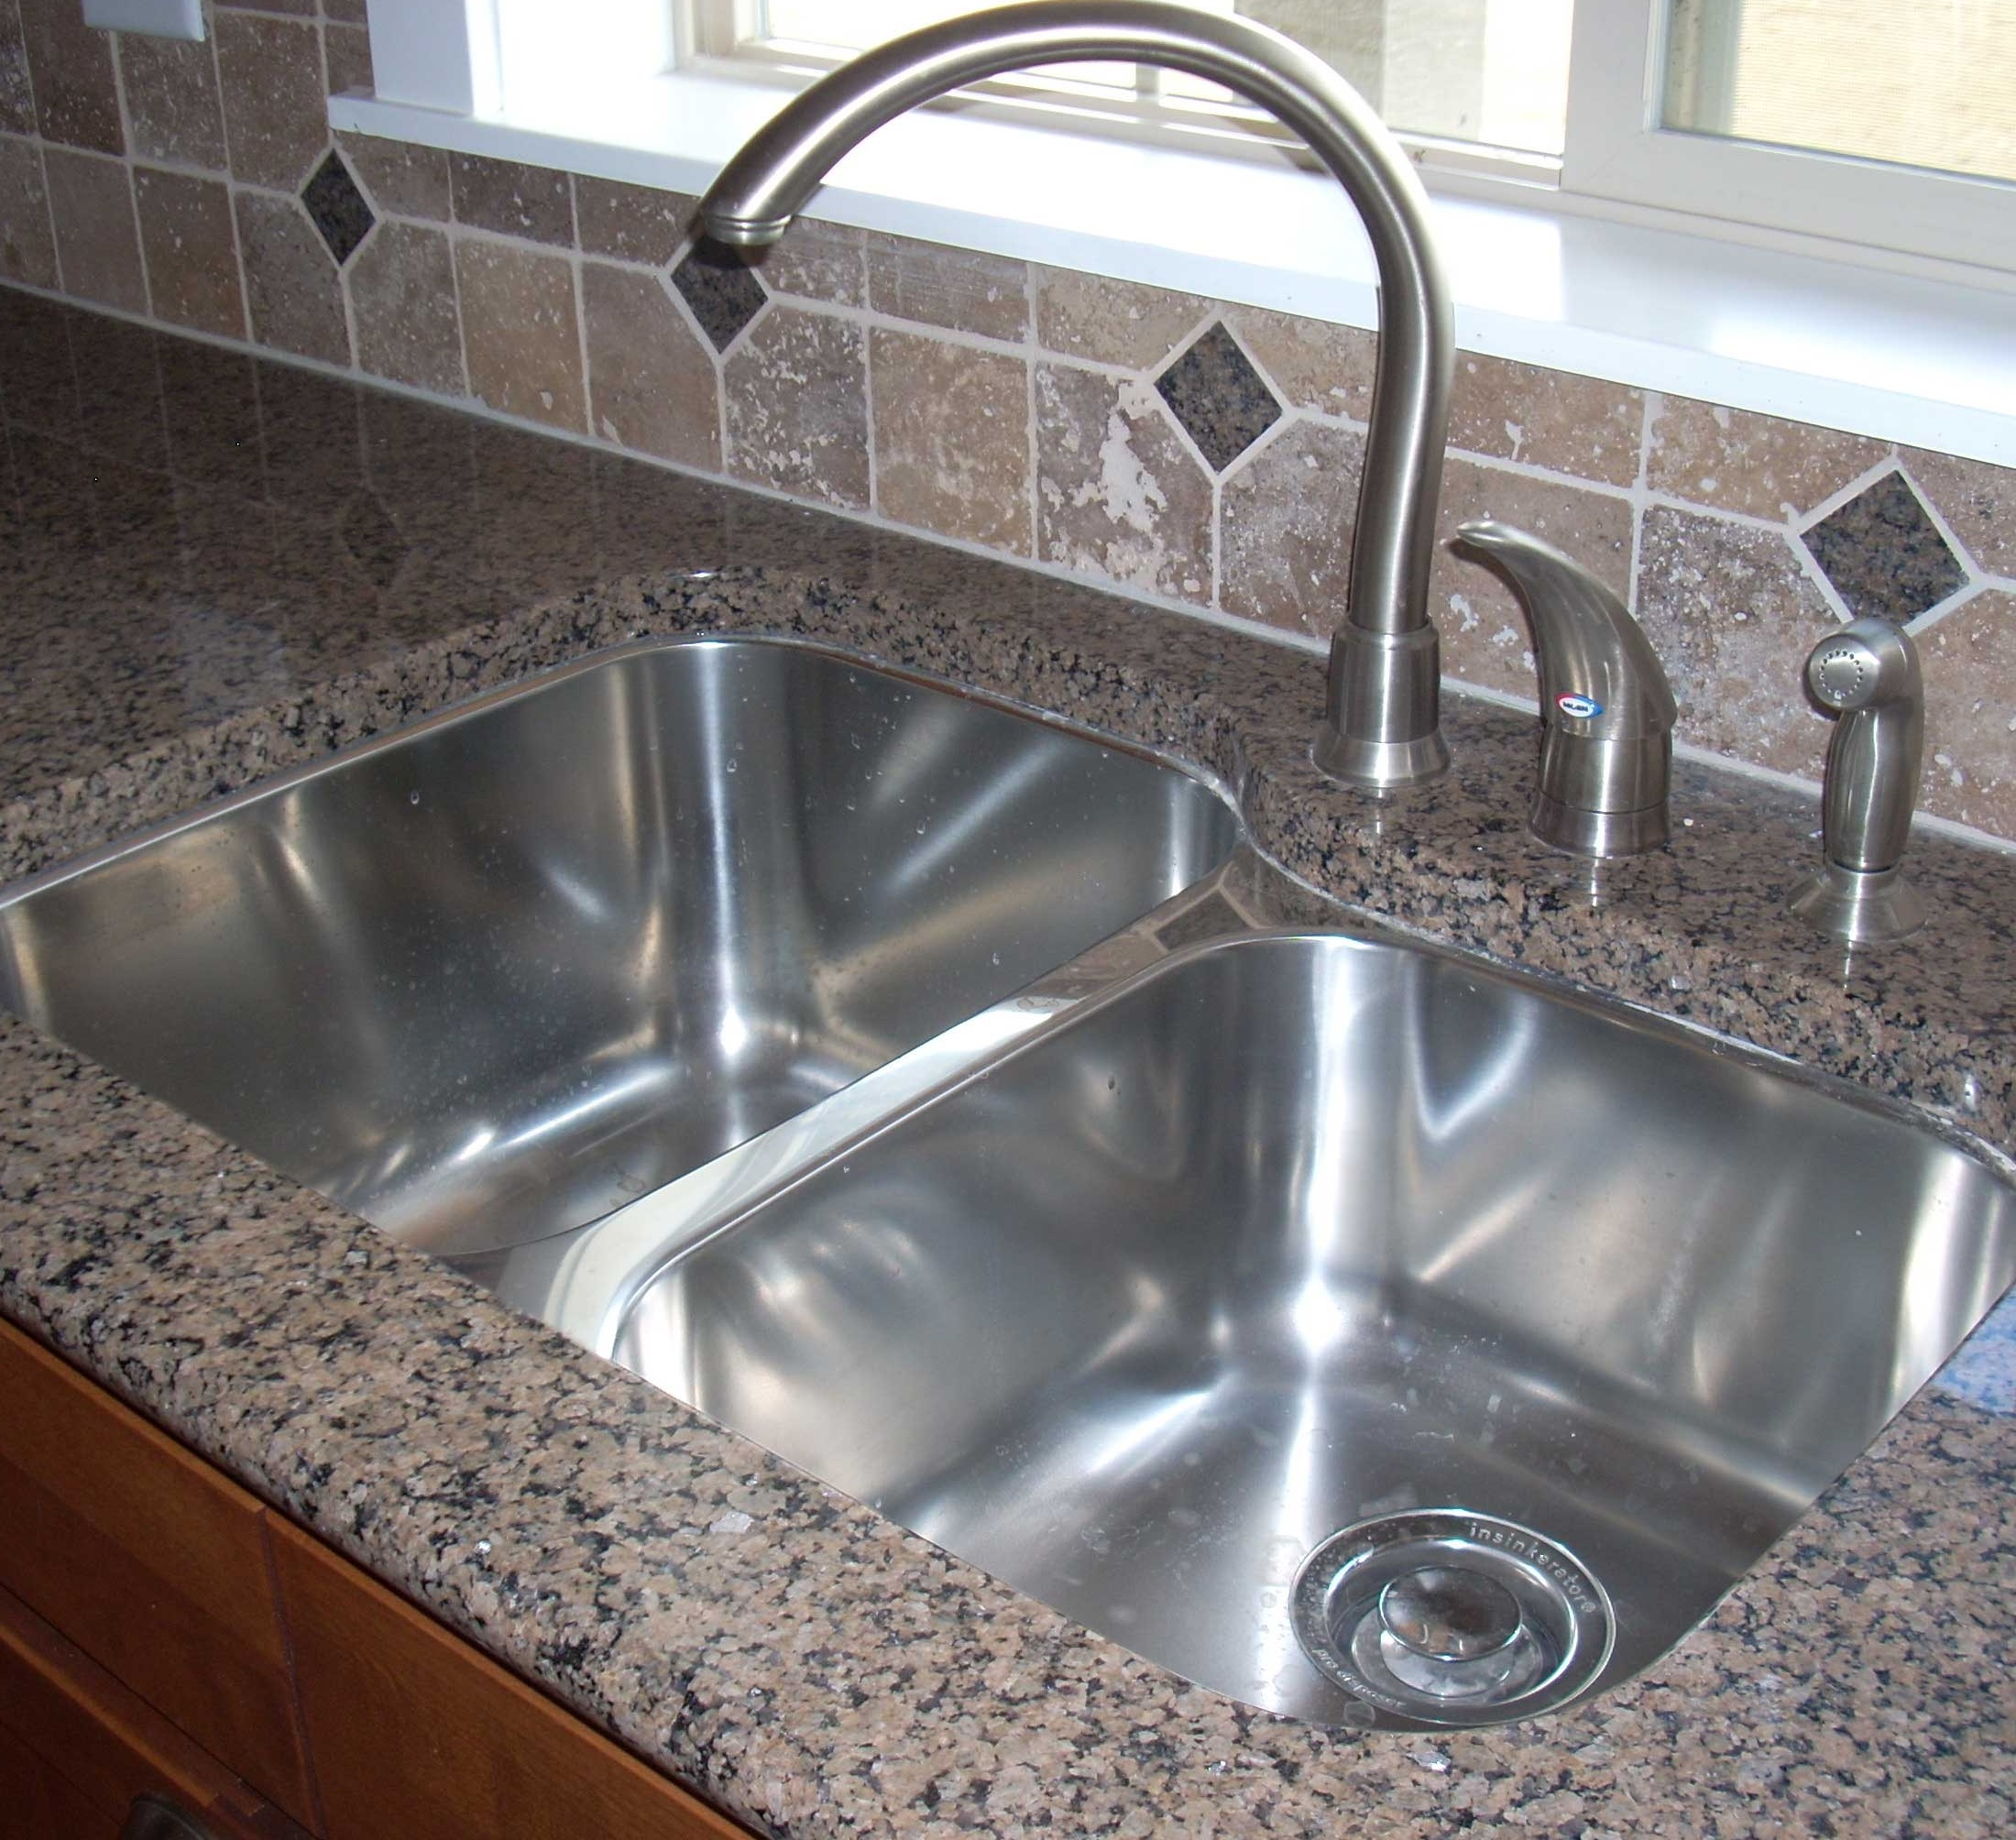 How Do You Clean A Smelly Kitchen Sink